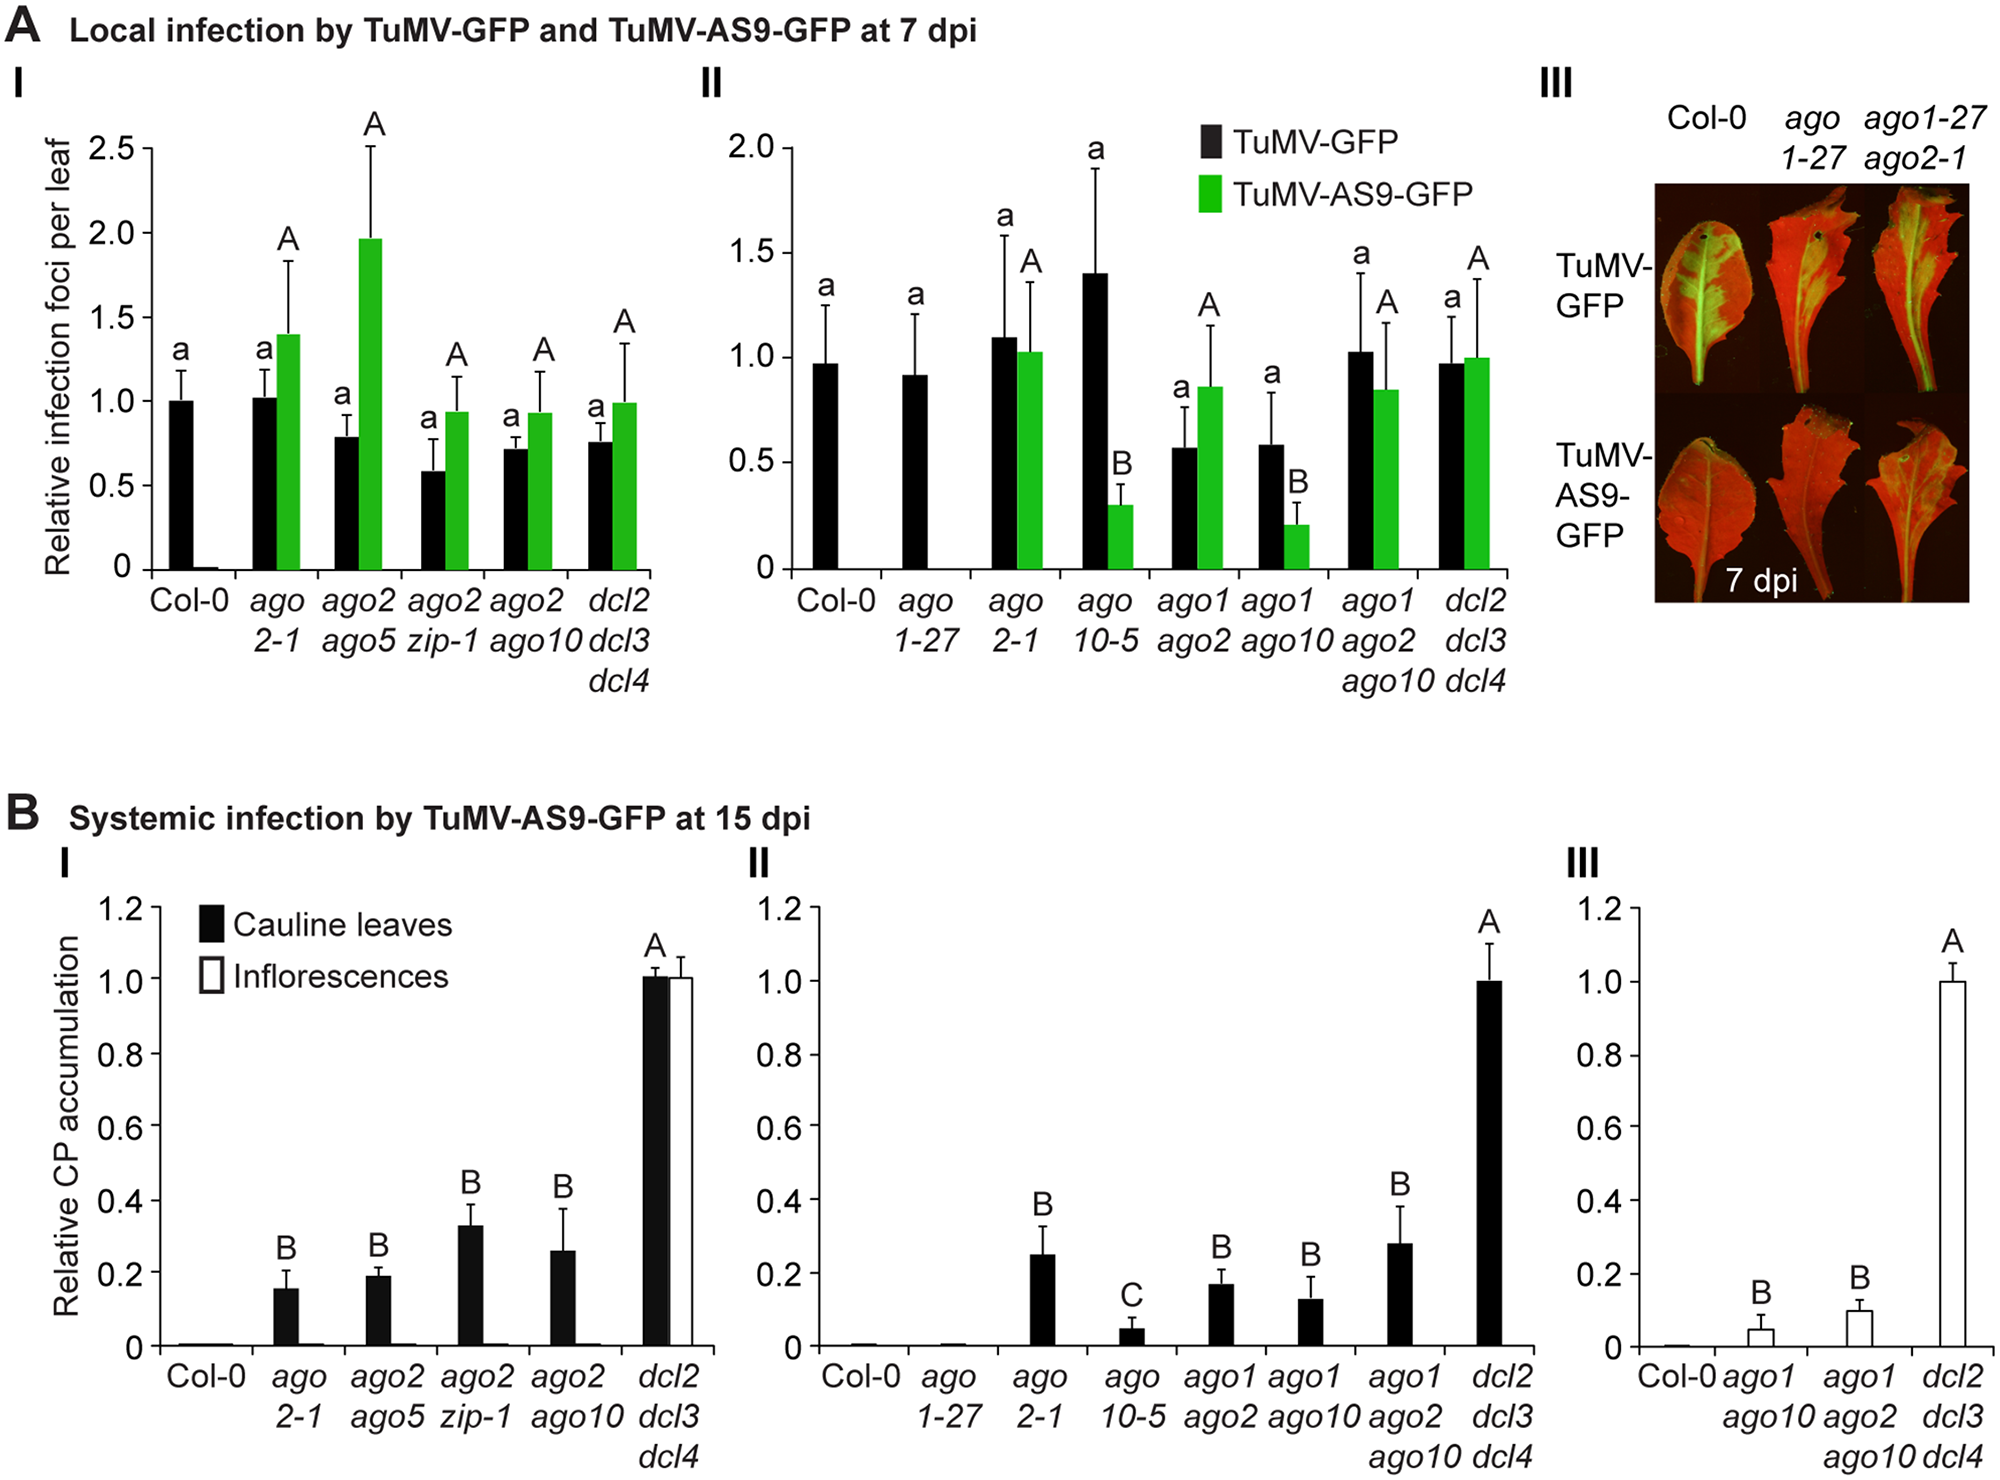 Local and systemic infection of a selected group of double and triple <i>ago</i> mutants by TuMV-GFP and TuMV-AS9-GFP.